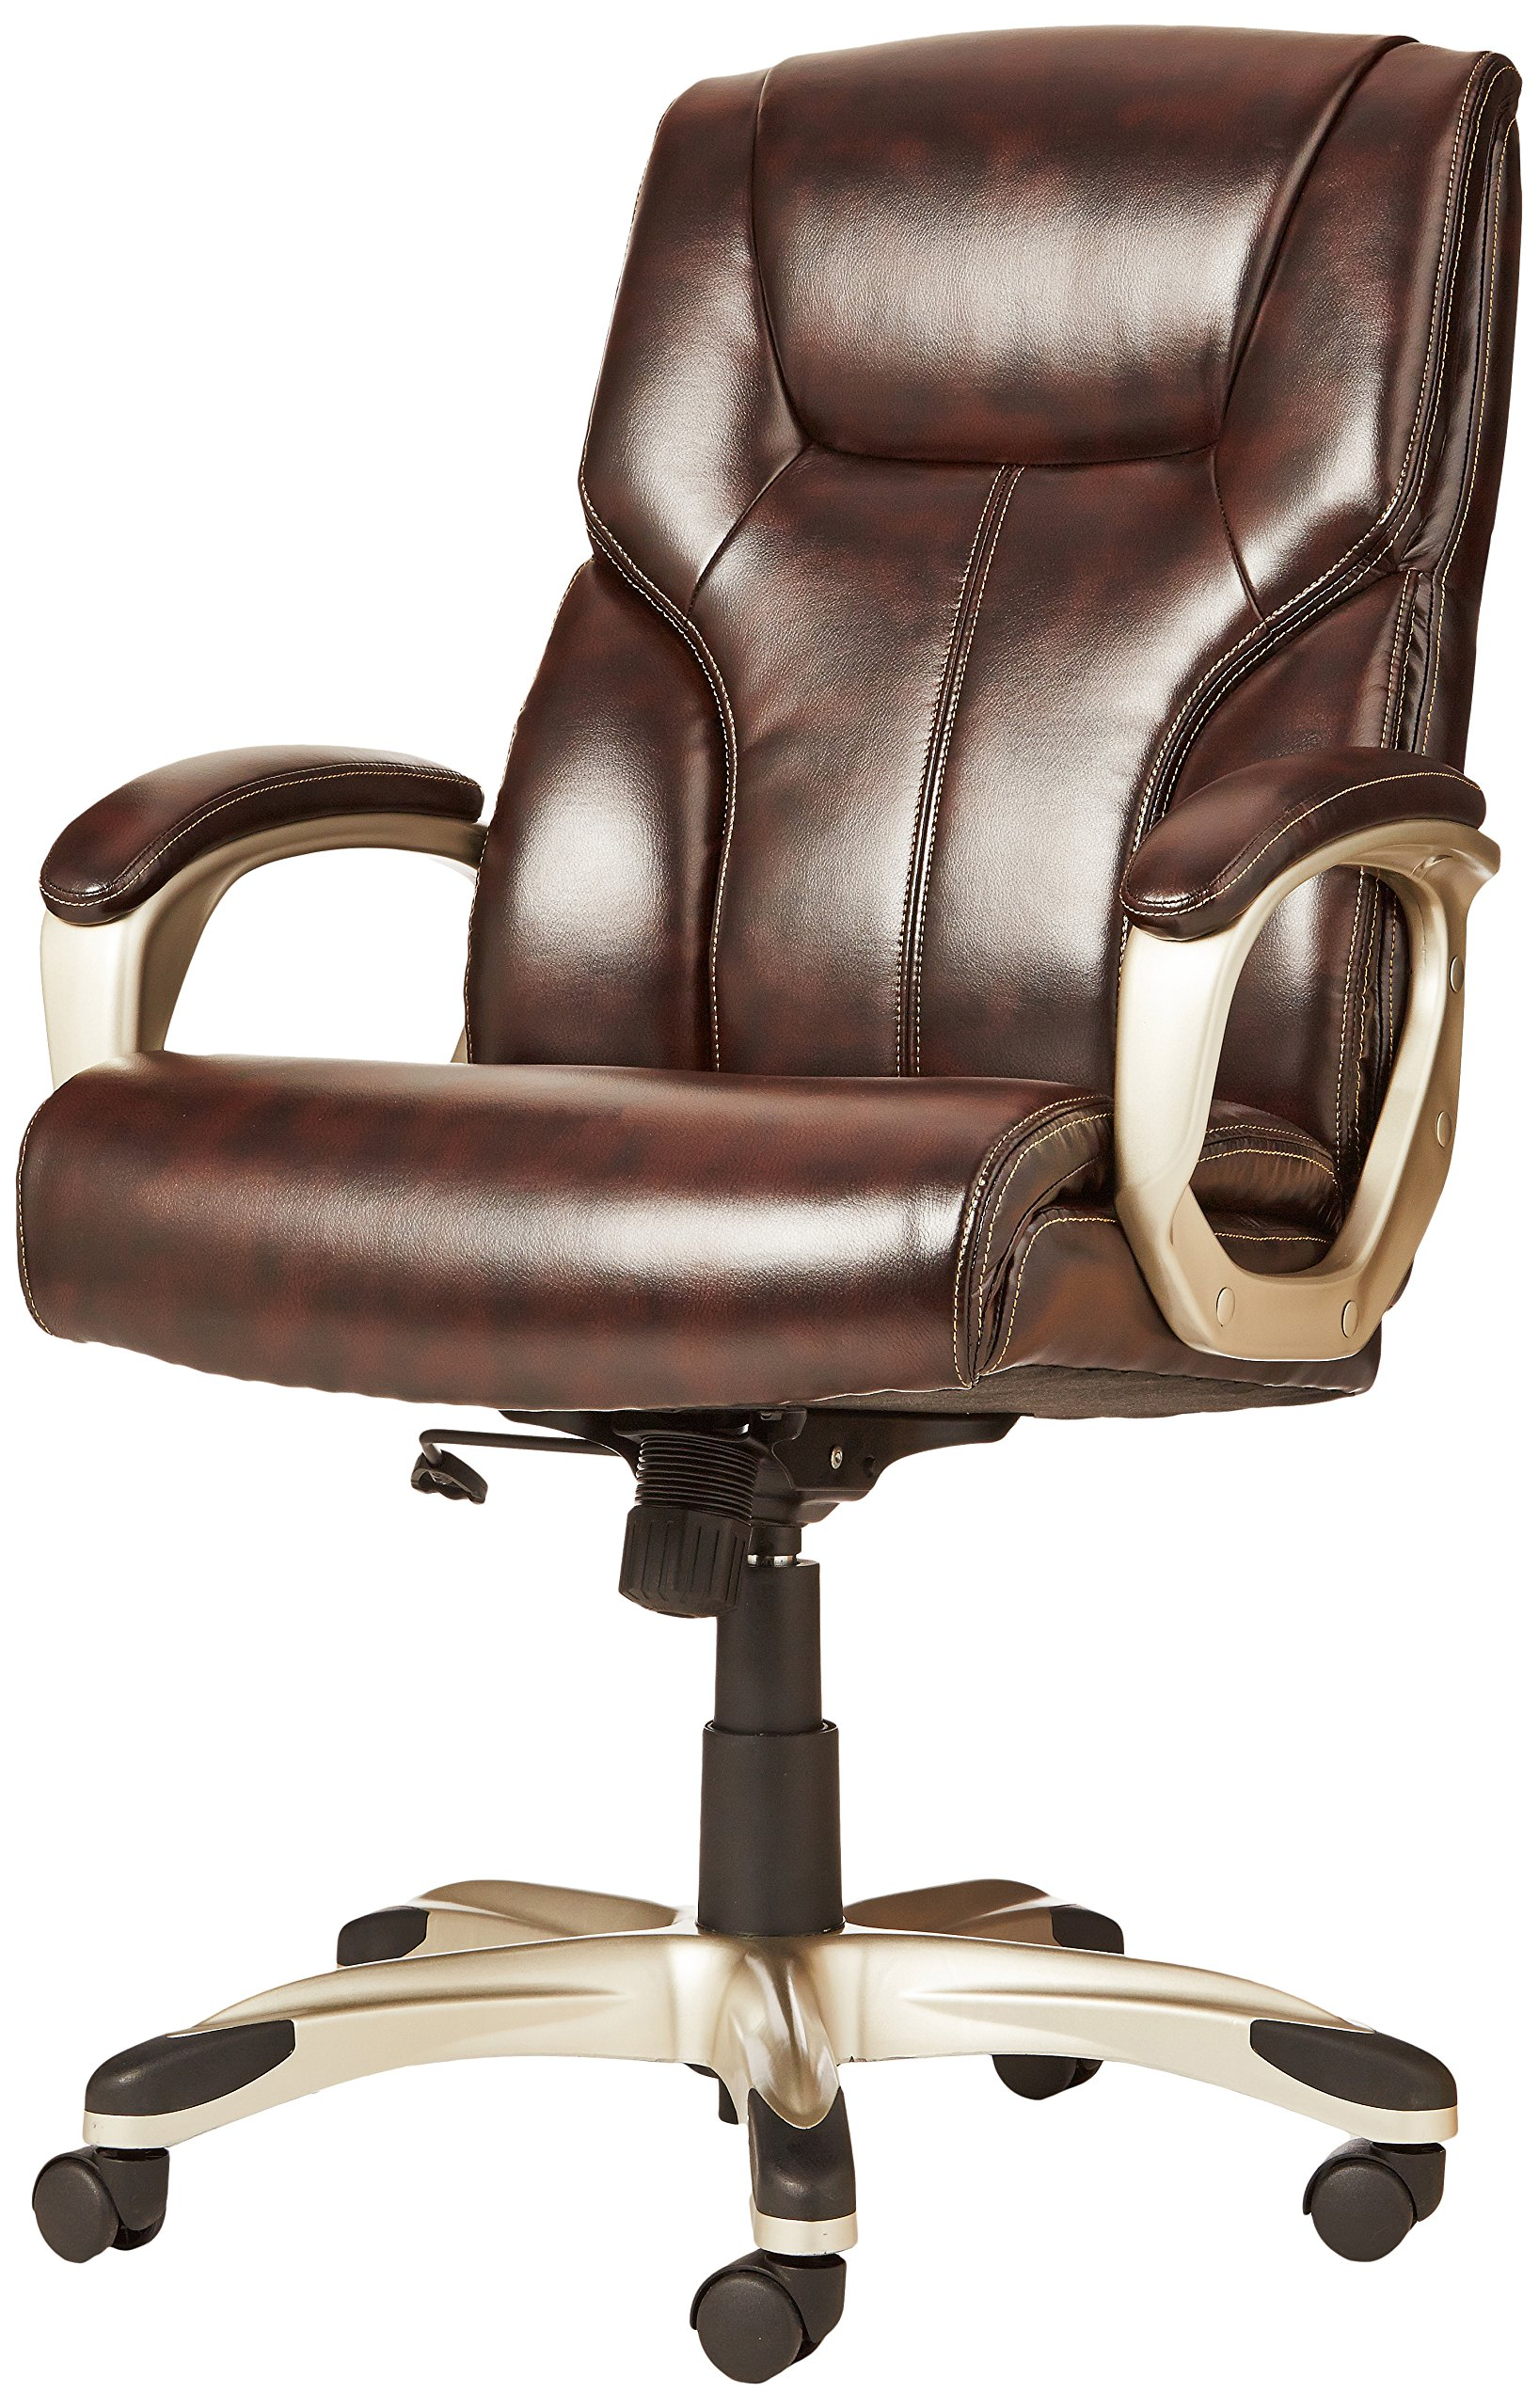 AmazonBasics High-Back Executive Swivel Office Desk Chair - Brown with Pewter Finish by AmazonBasics (Image #6)